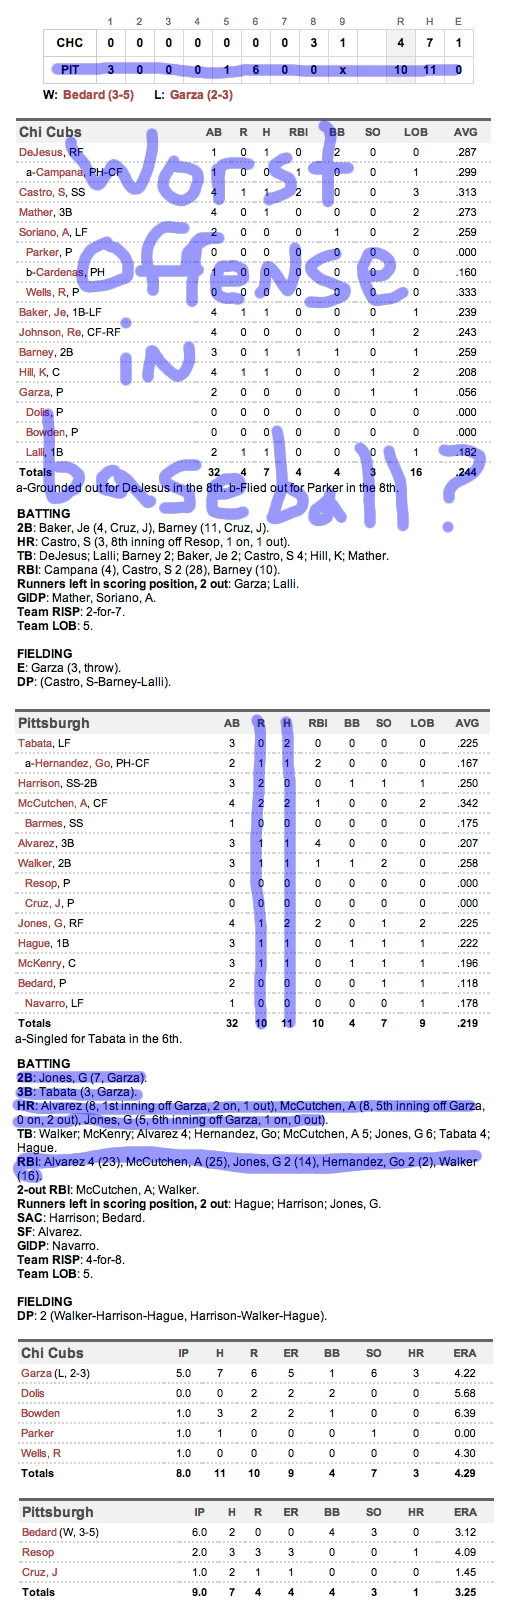 Enhanced Box Score: Cubs 4, Pirates 10 – May 27, 2012